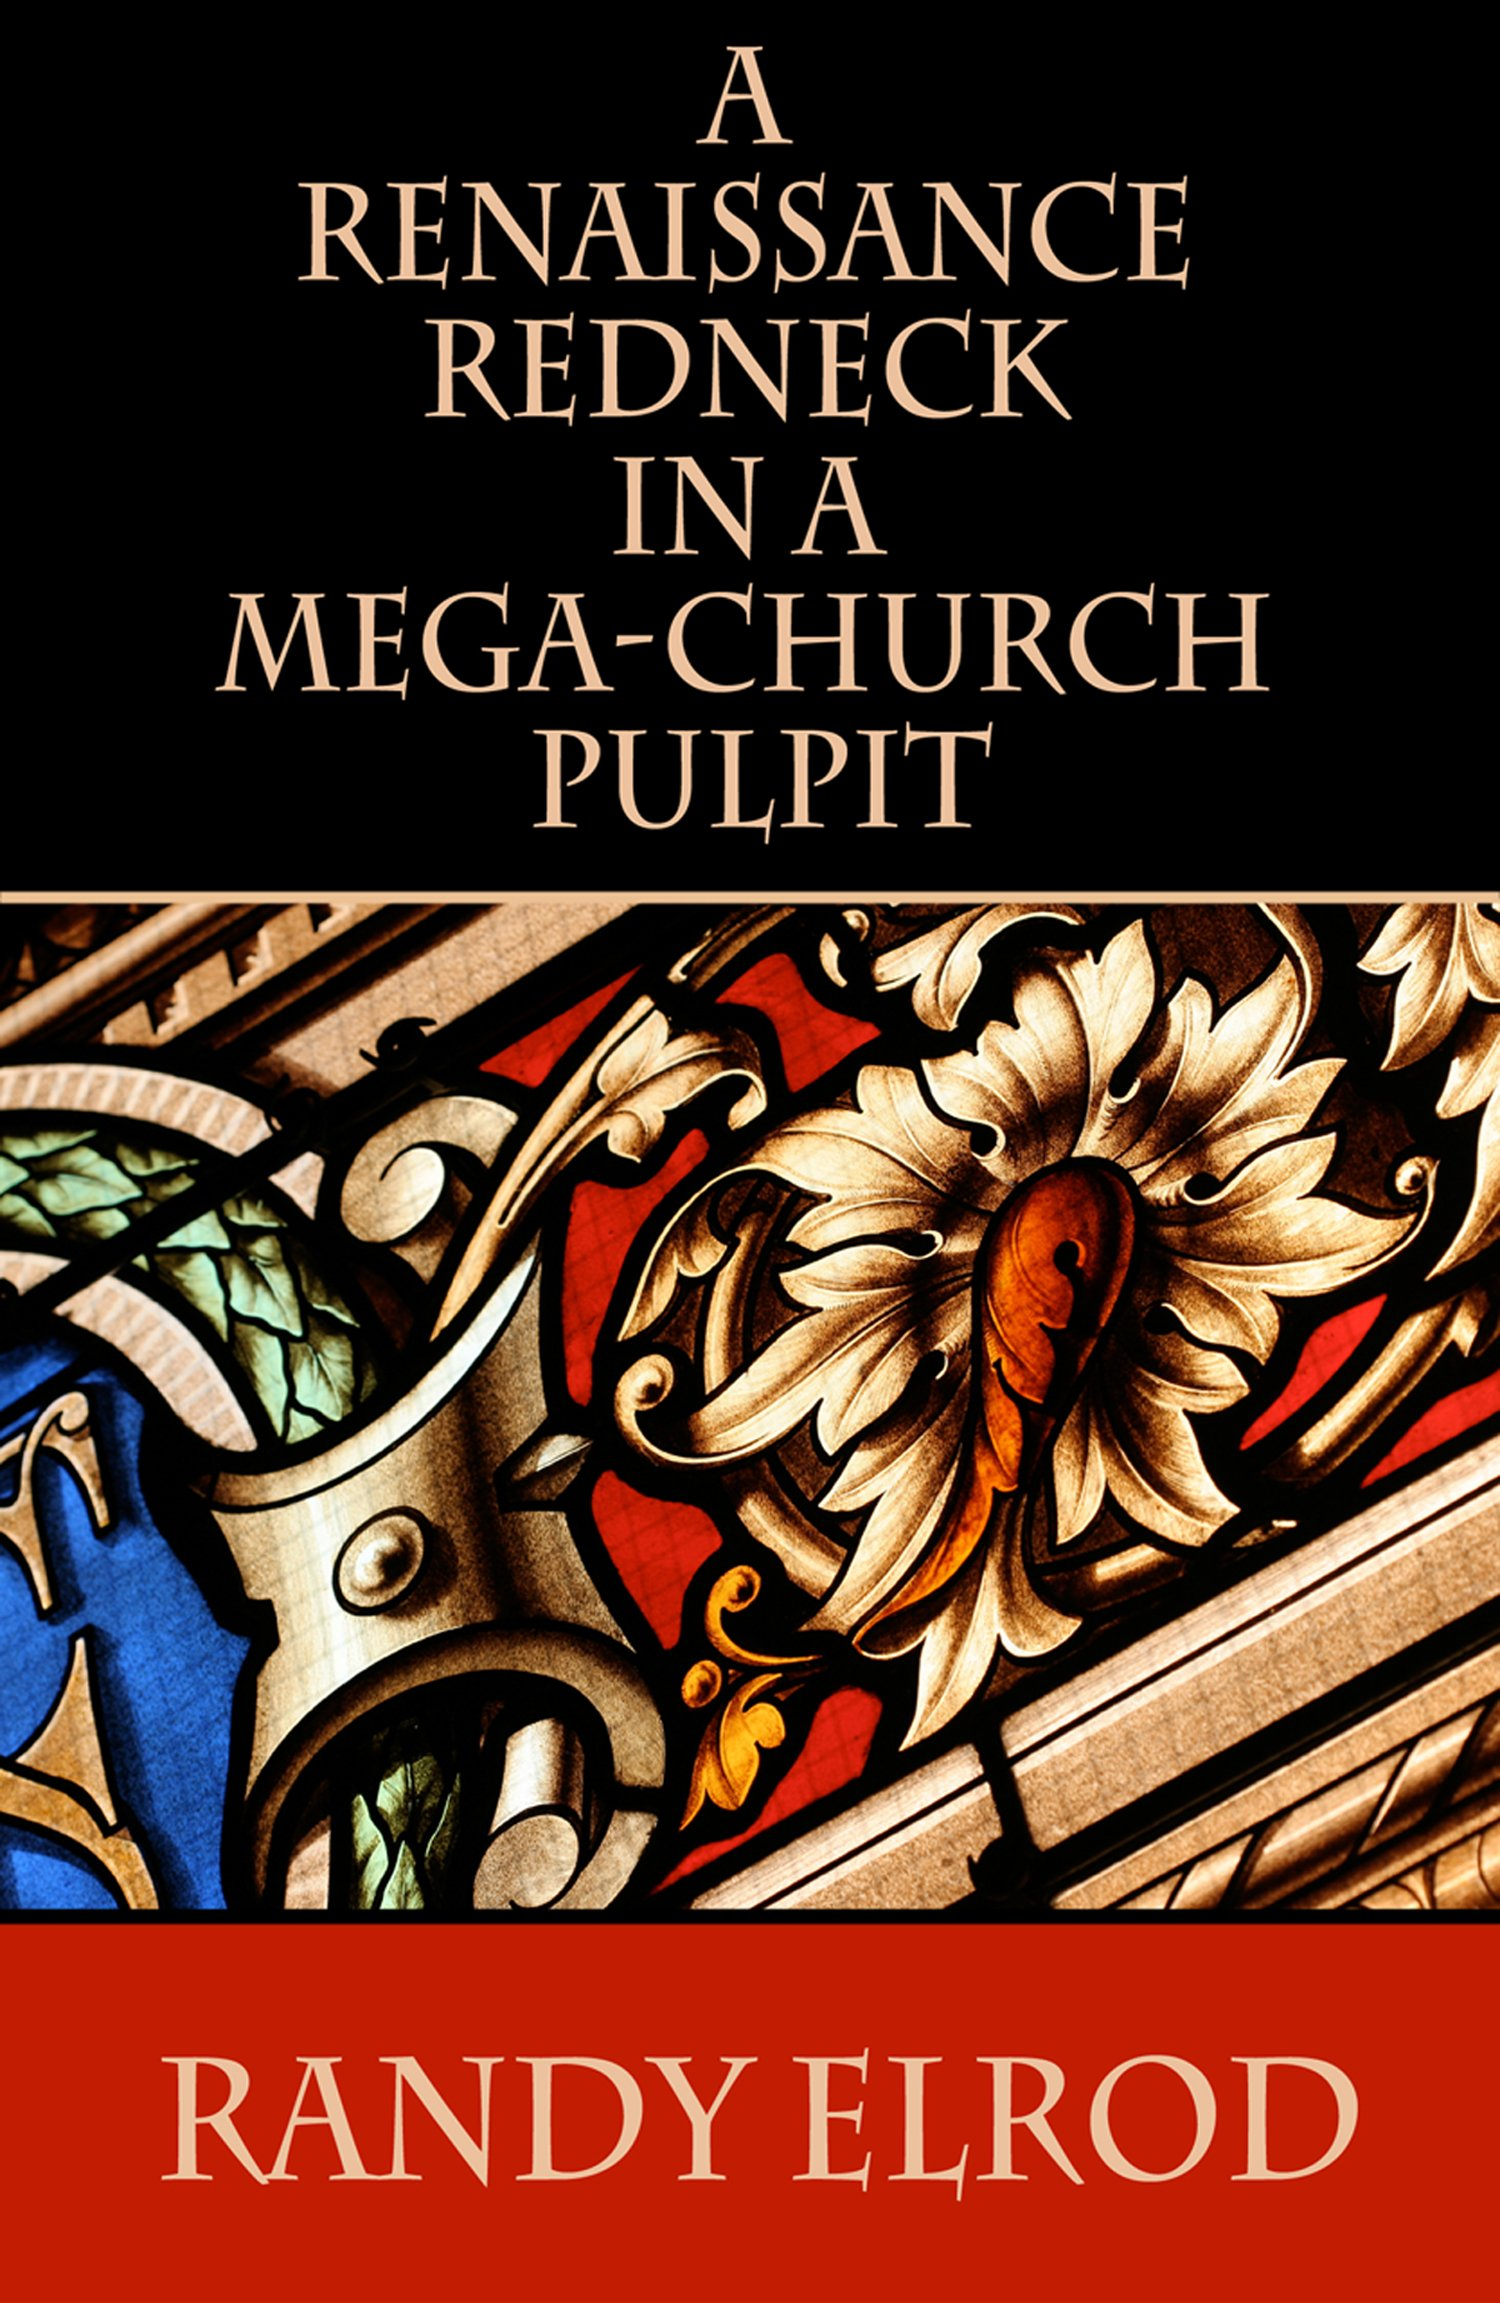 Download A Renaissance Redneck In A Mega-Church Pulpit PDF